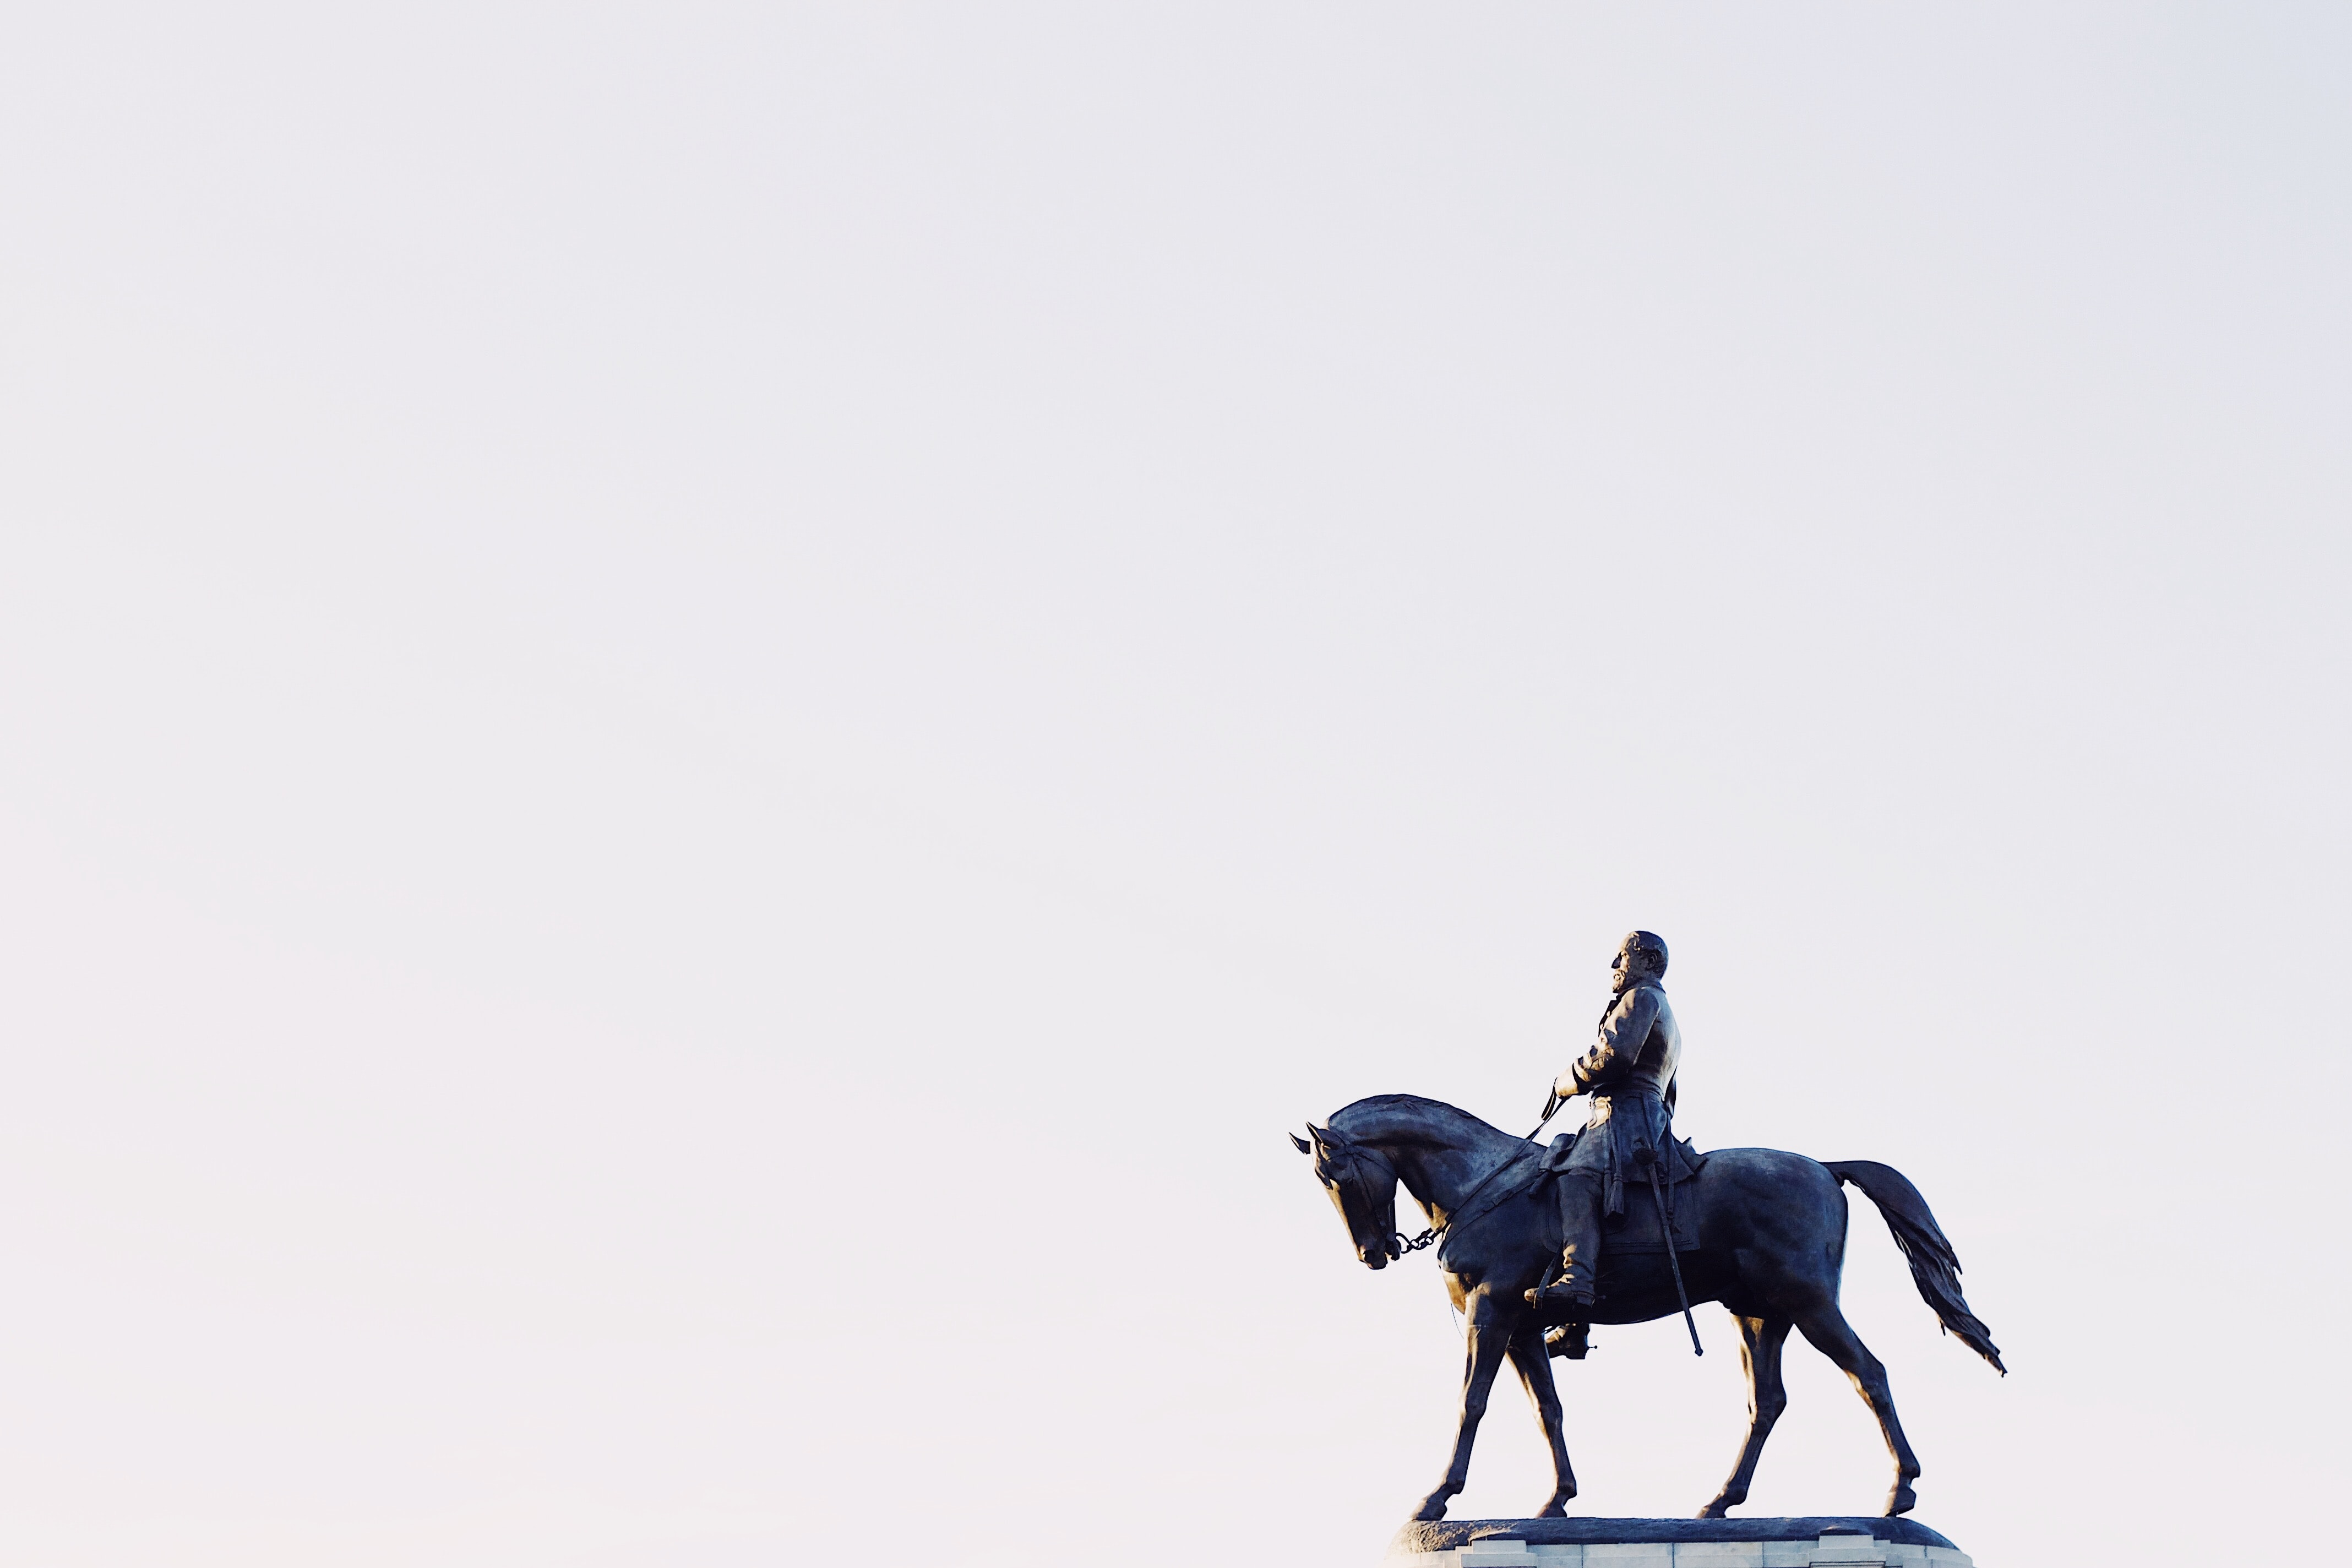 A statue of a person riding a horse.